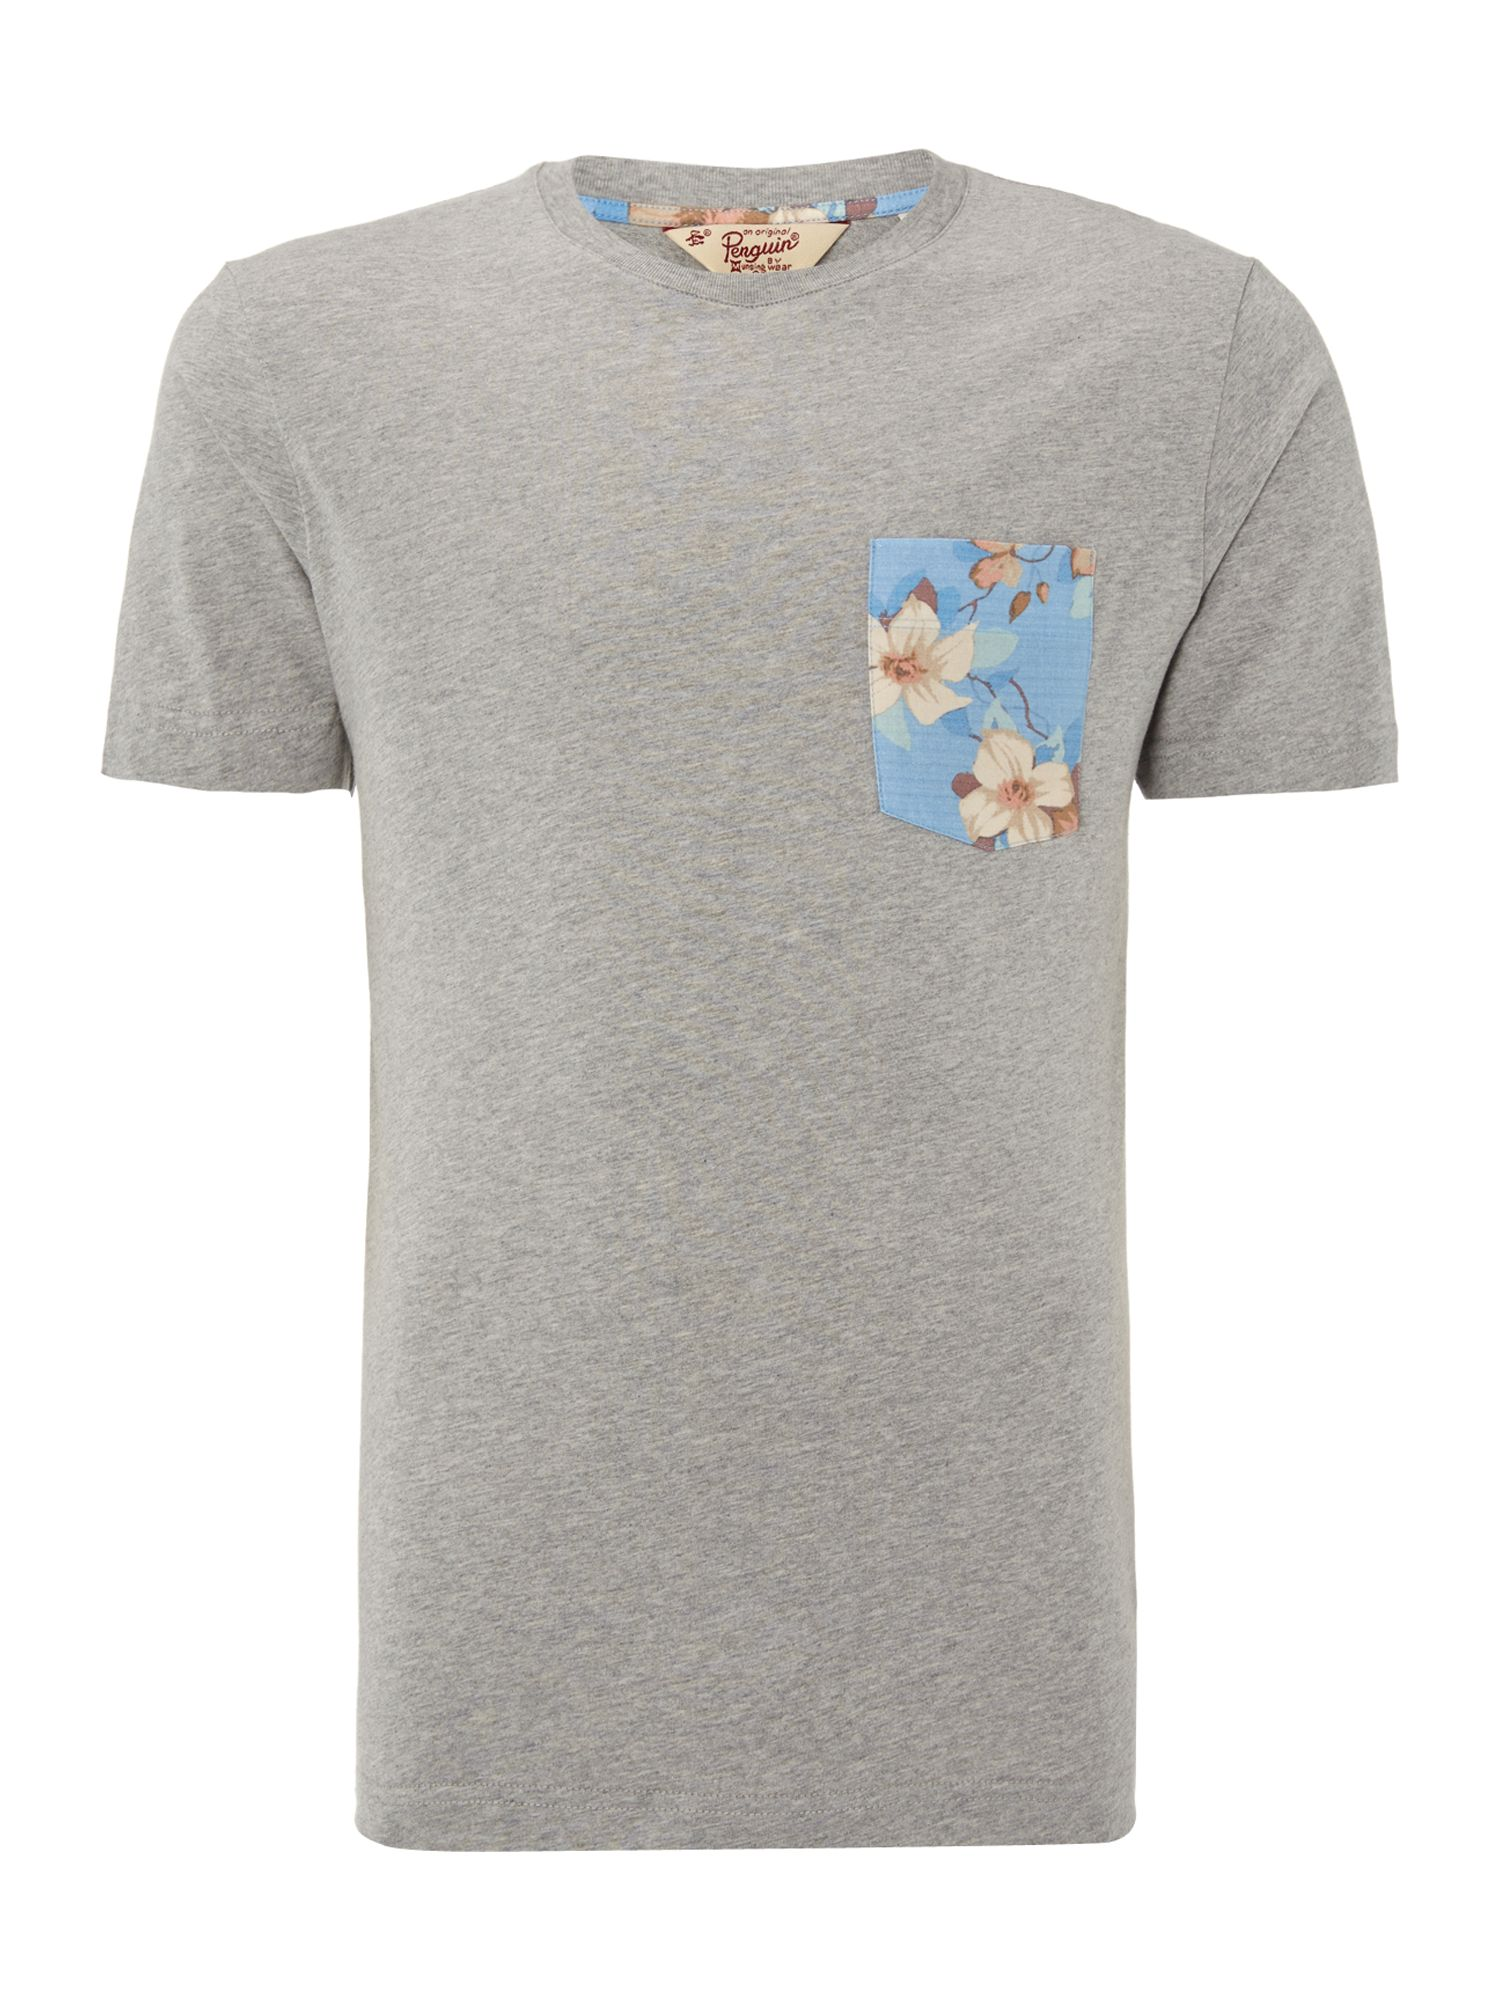 Woven pocket trim t shirt